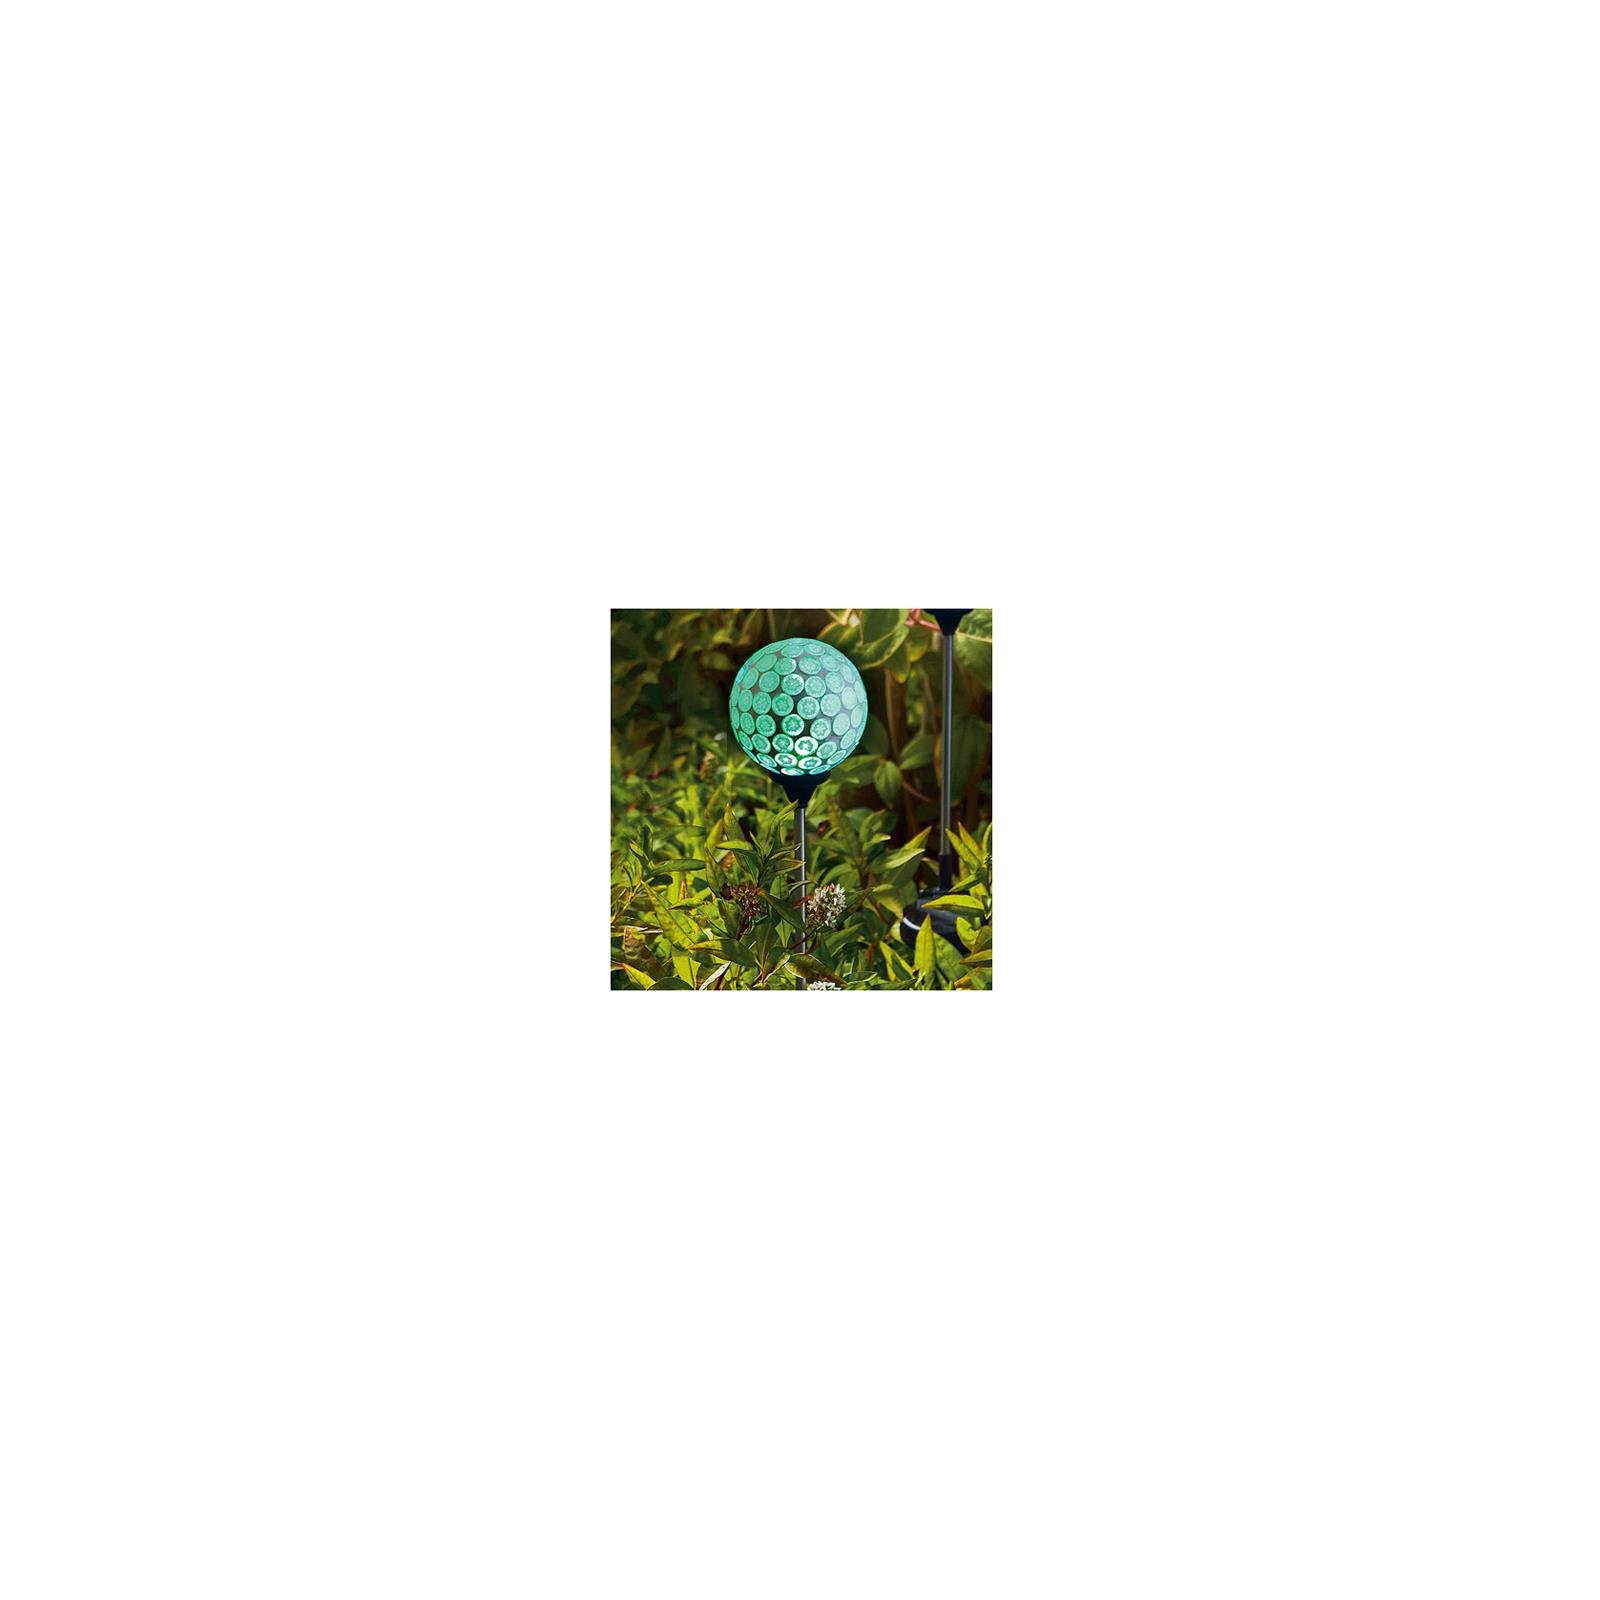 Forever Gifts S120901314-G LED Solar Stake Light, Mint Green Mosaic Sphere, 30-In. Height - Quantity 8